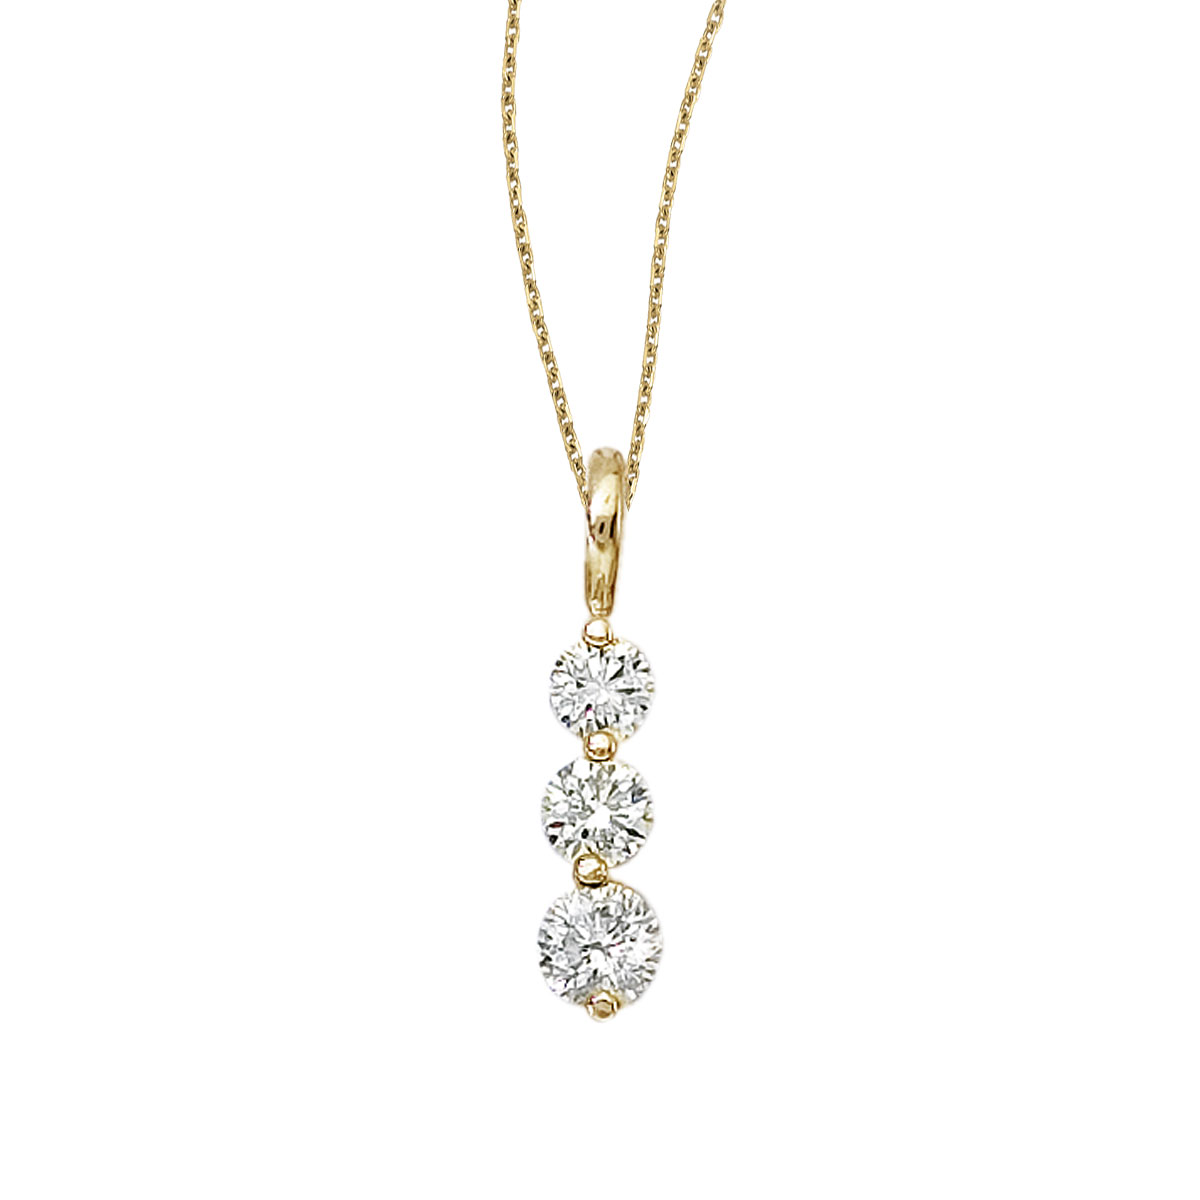 14k yellow gold 3 stone diamond drop pendant with bail and 18 chain 14k yellow gold 3 stone diamond drop pendant with bail and 18 chain aloadofball